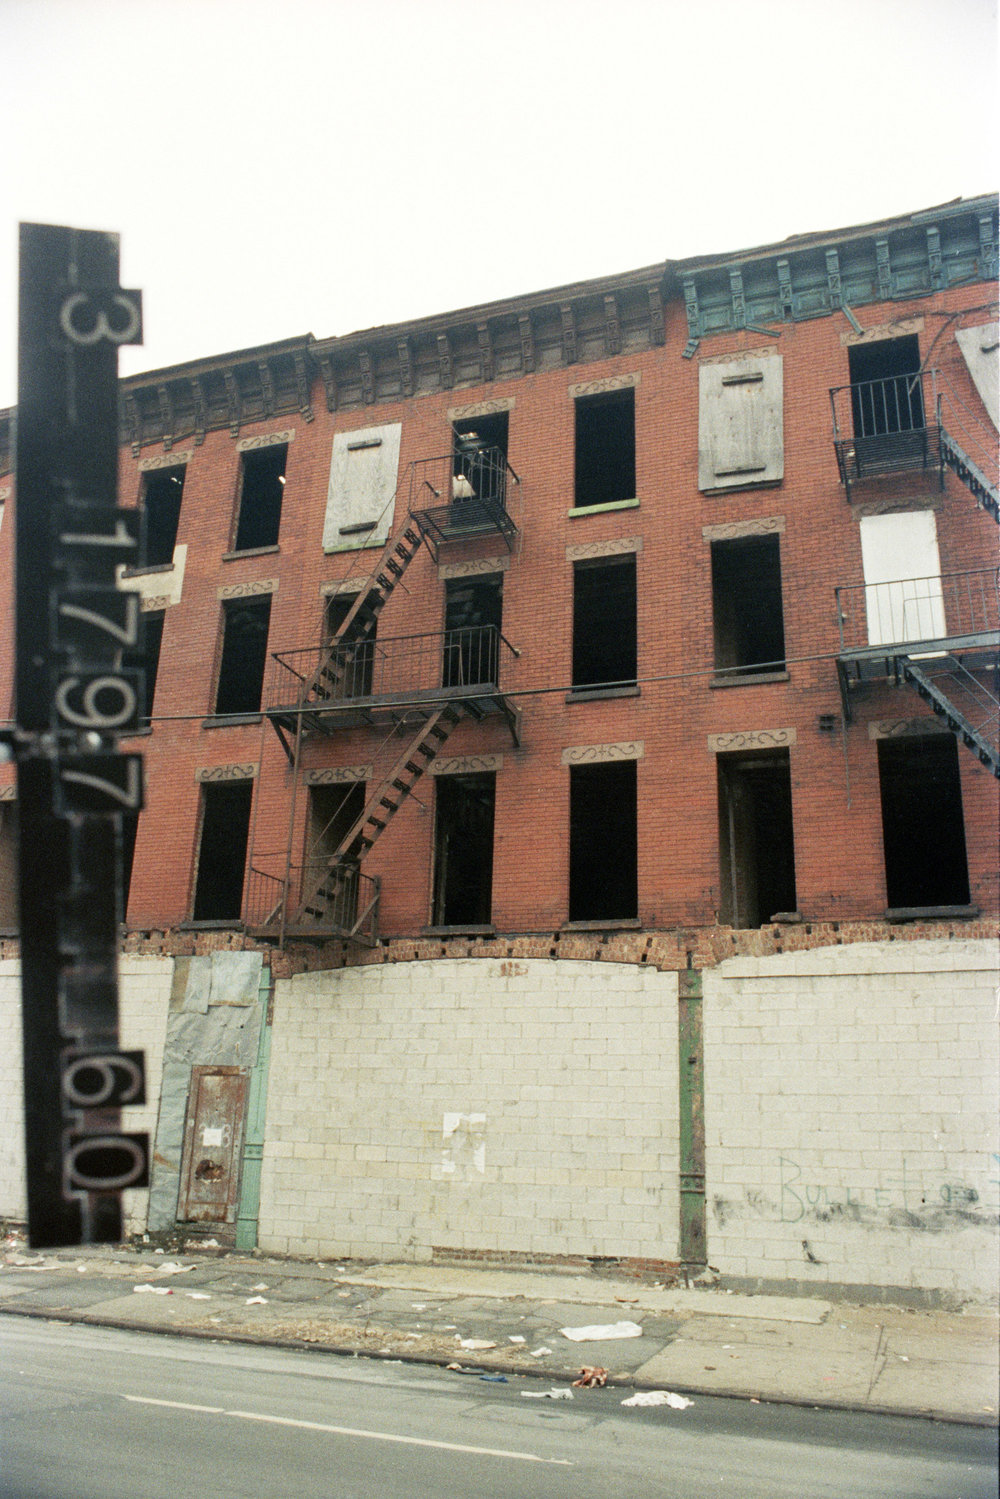 344 Nostrand Ave., mid-1980s. Photo: Department of Finance collection, NYC Municipal Archives.